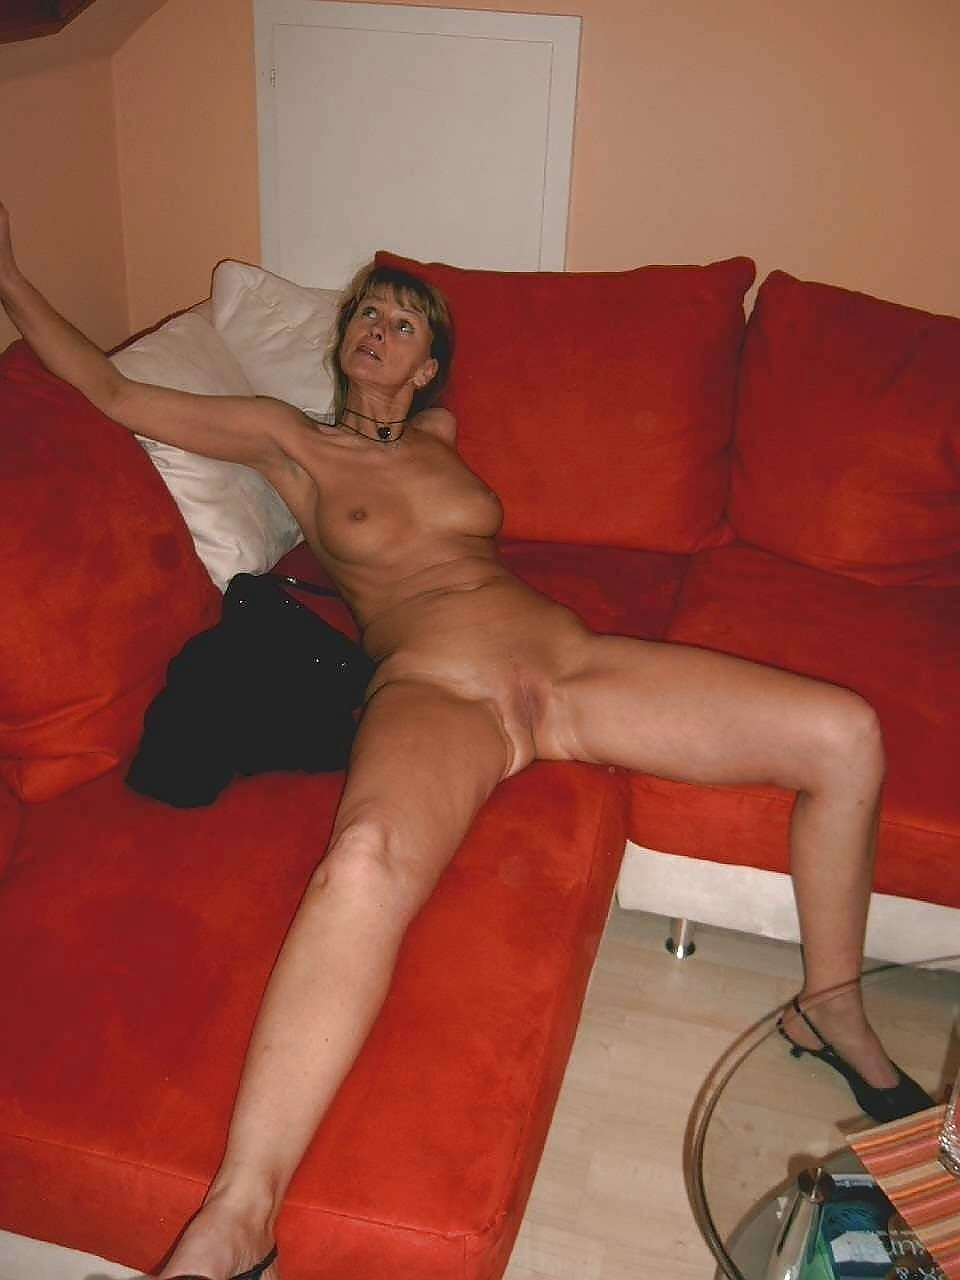 Chested young milf nude sofa pussy